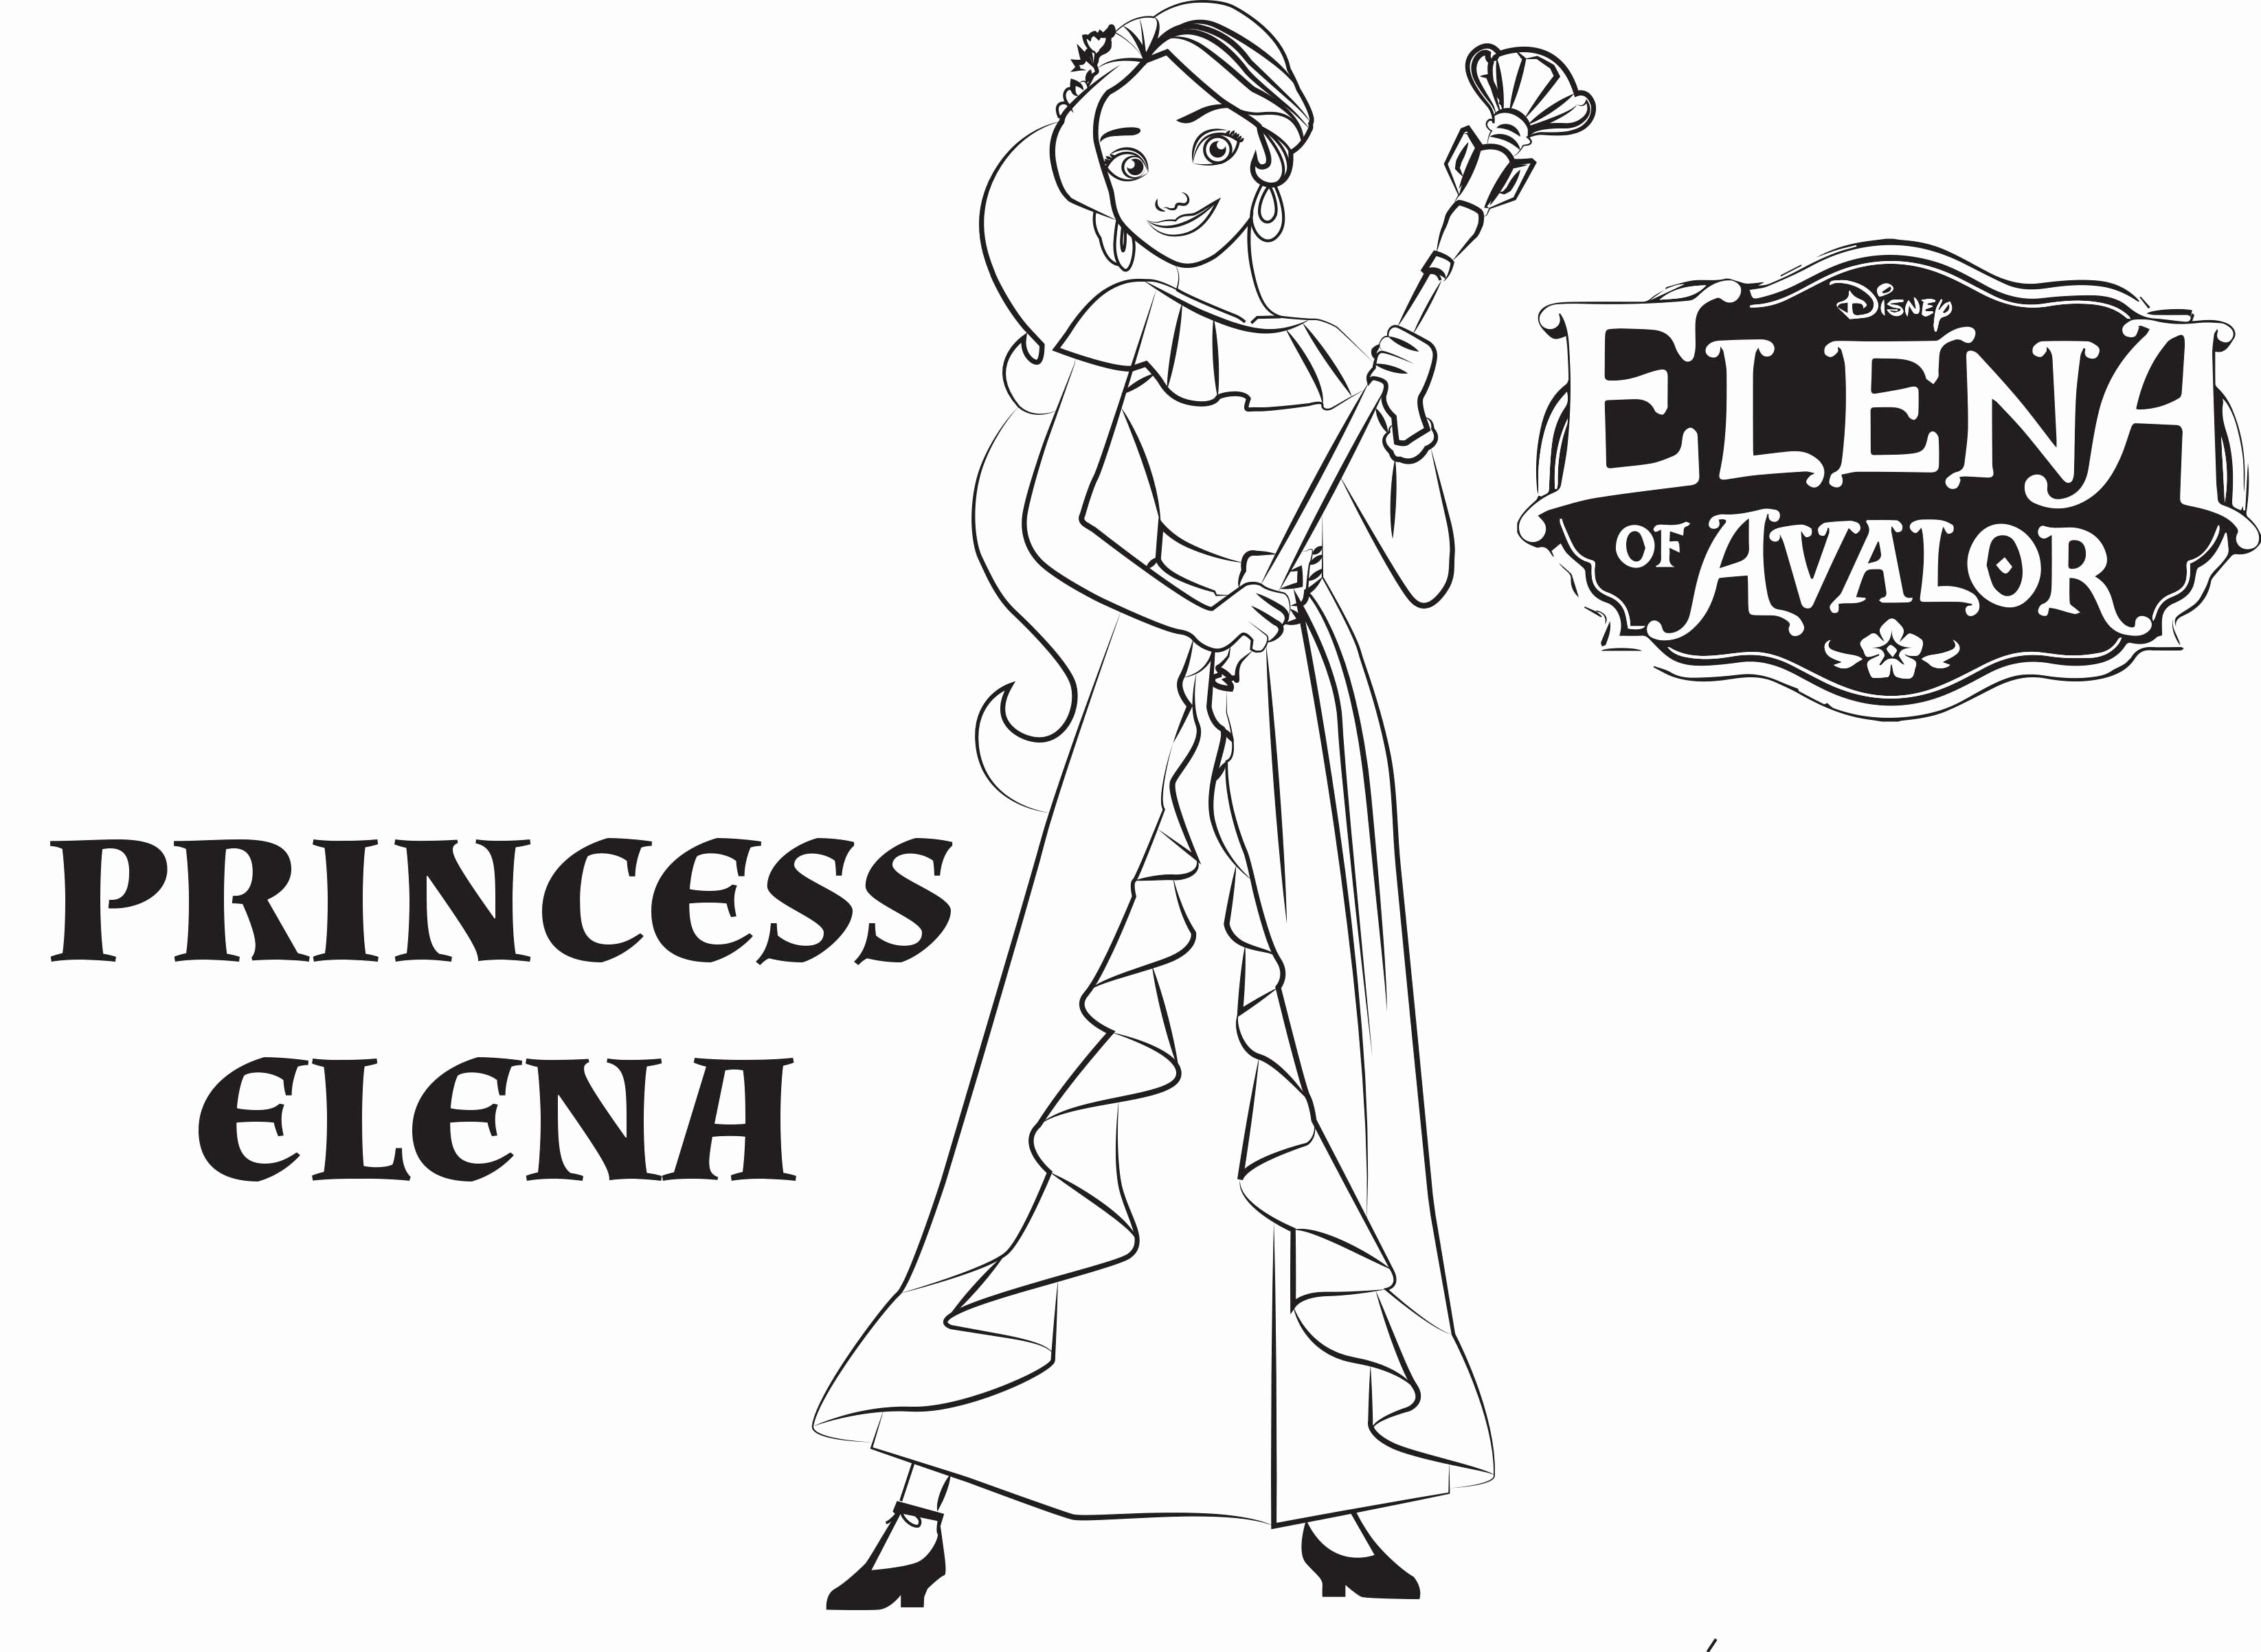 elena of avalor coloring pages to print Download-Elena Avalor Coloring Pages Free Elena Avalor Coloring Pages to Print New Princess Coloring Best 12-n